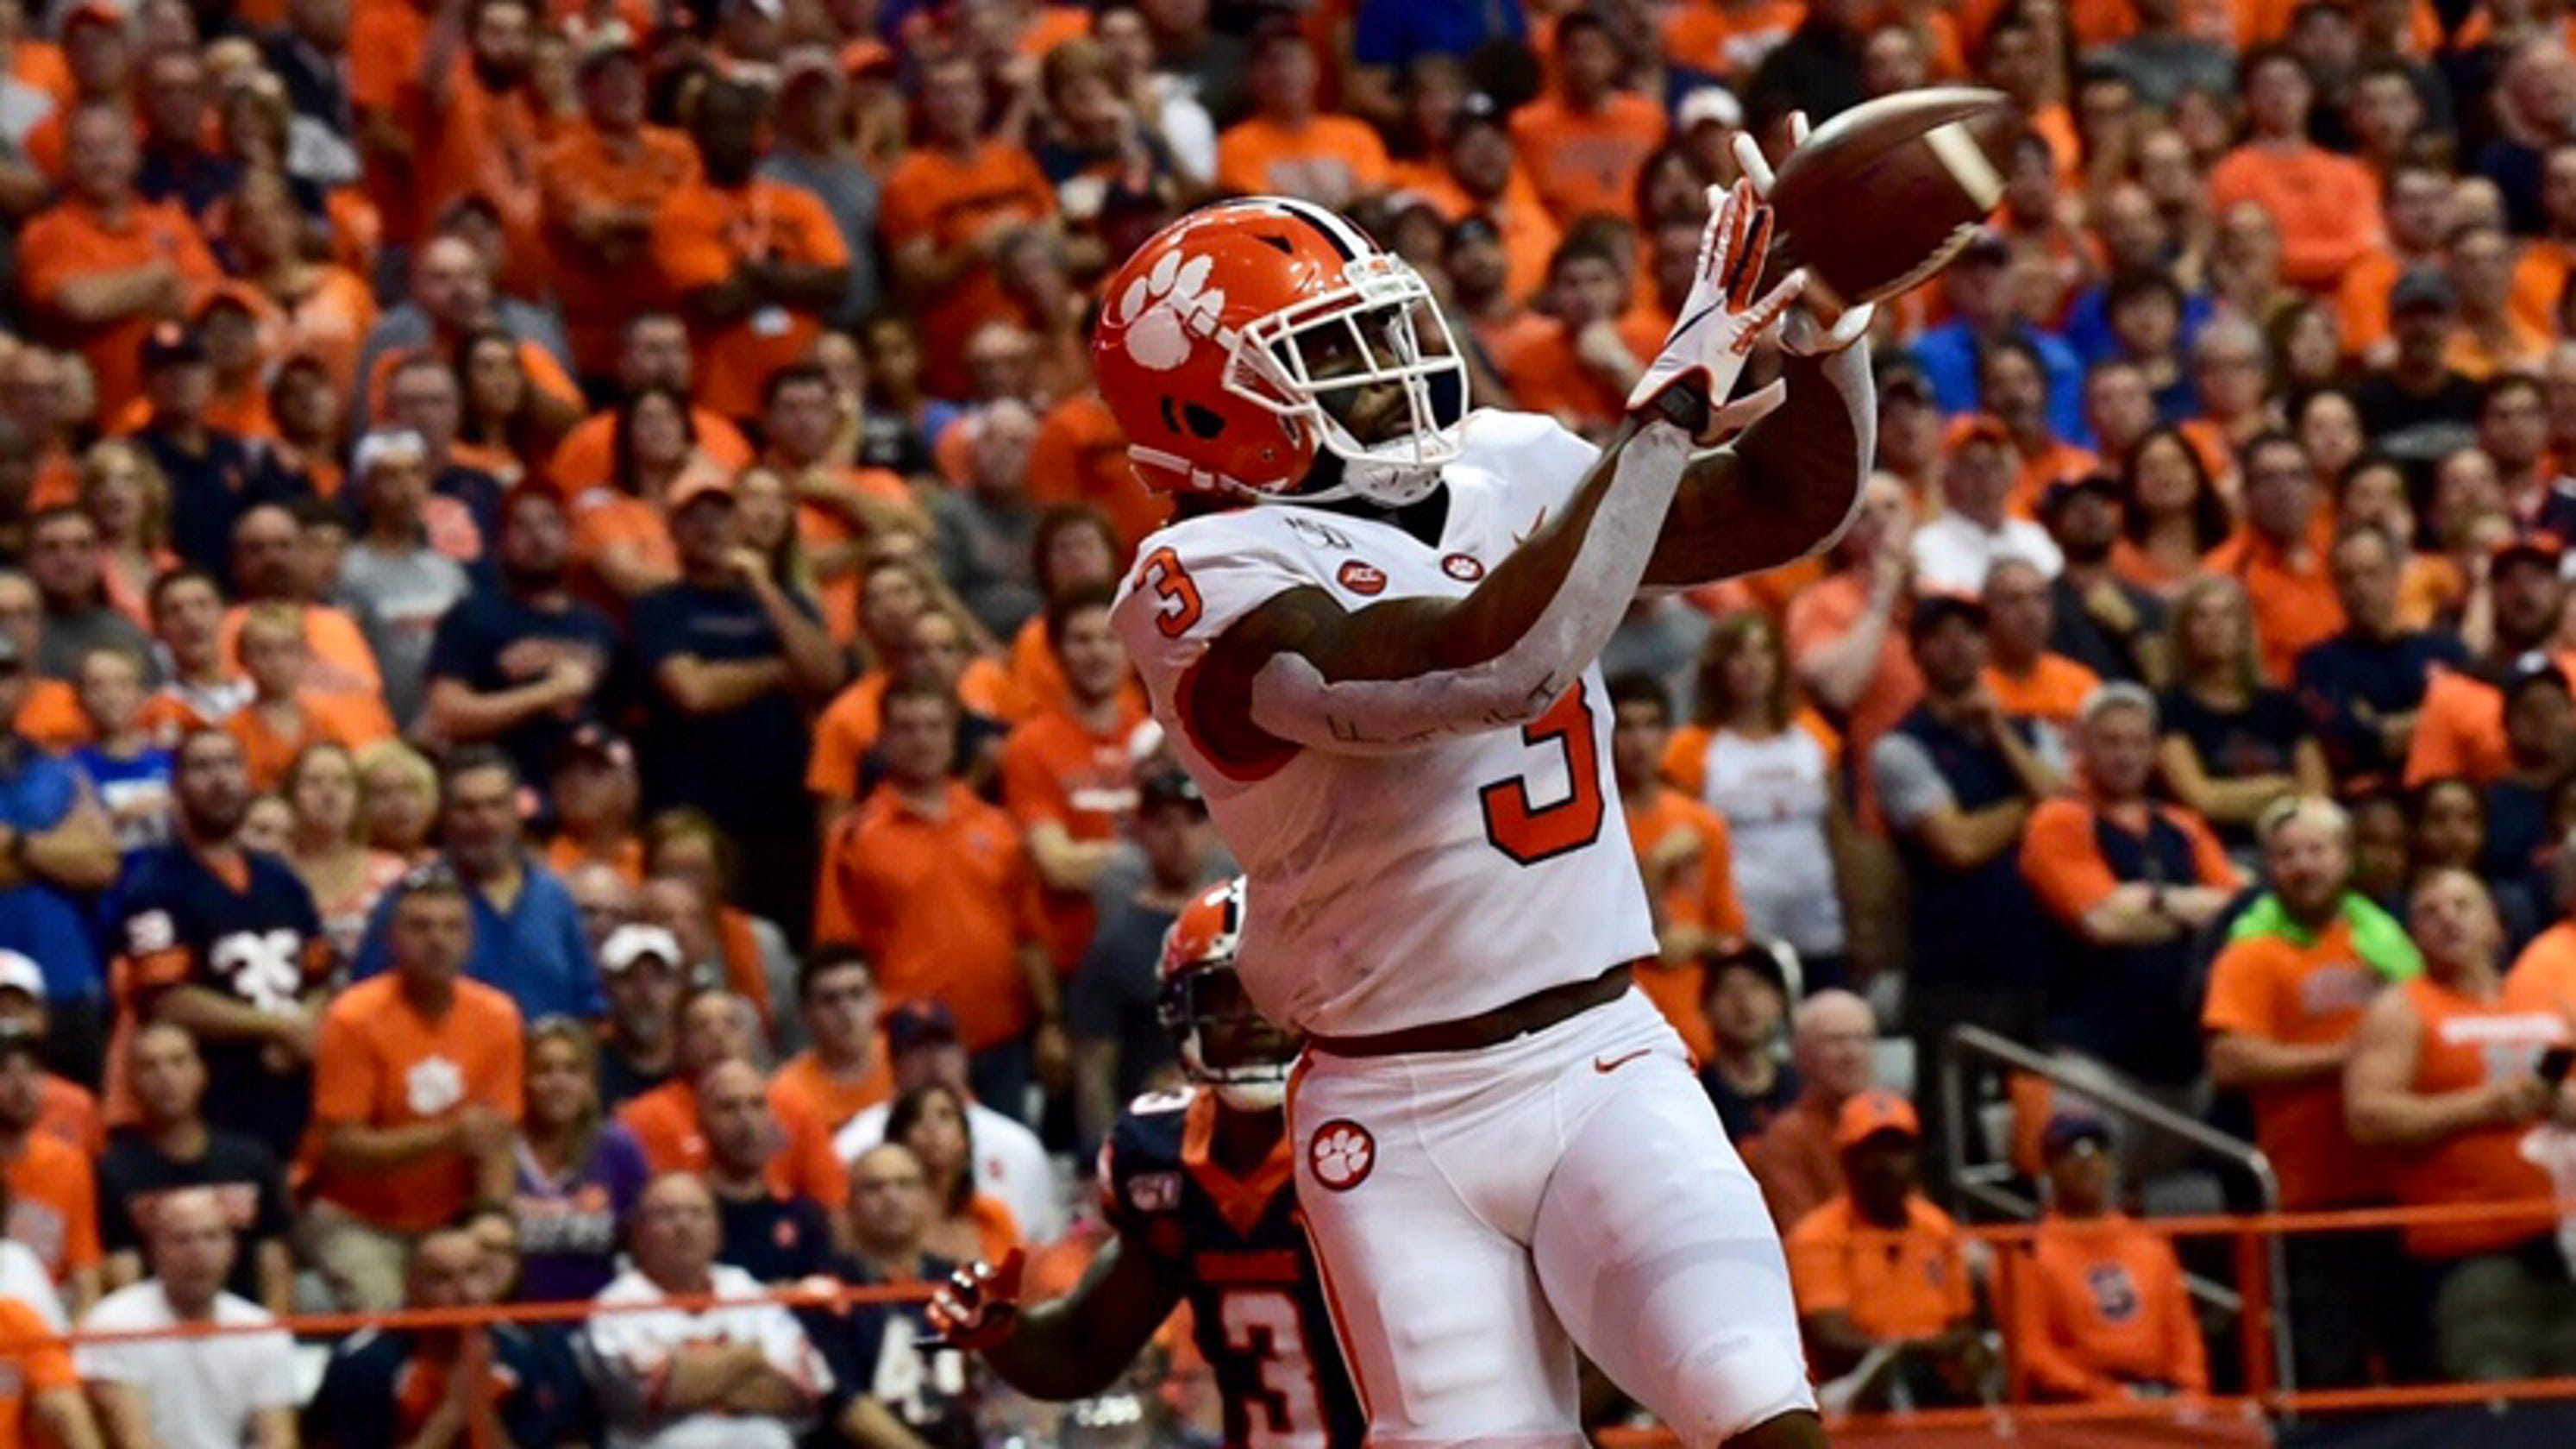 clemson vs syracuse - photo #33